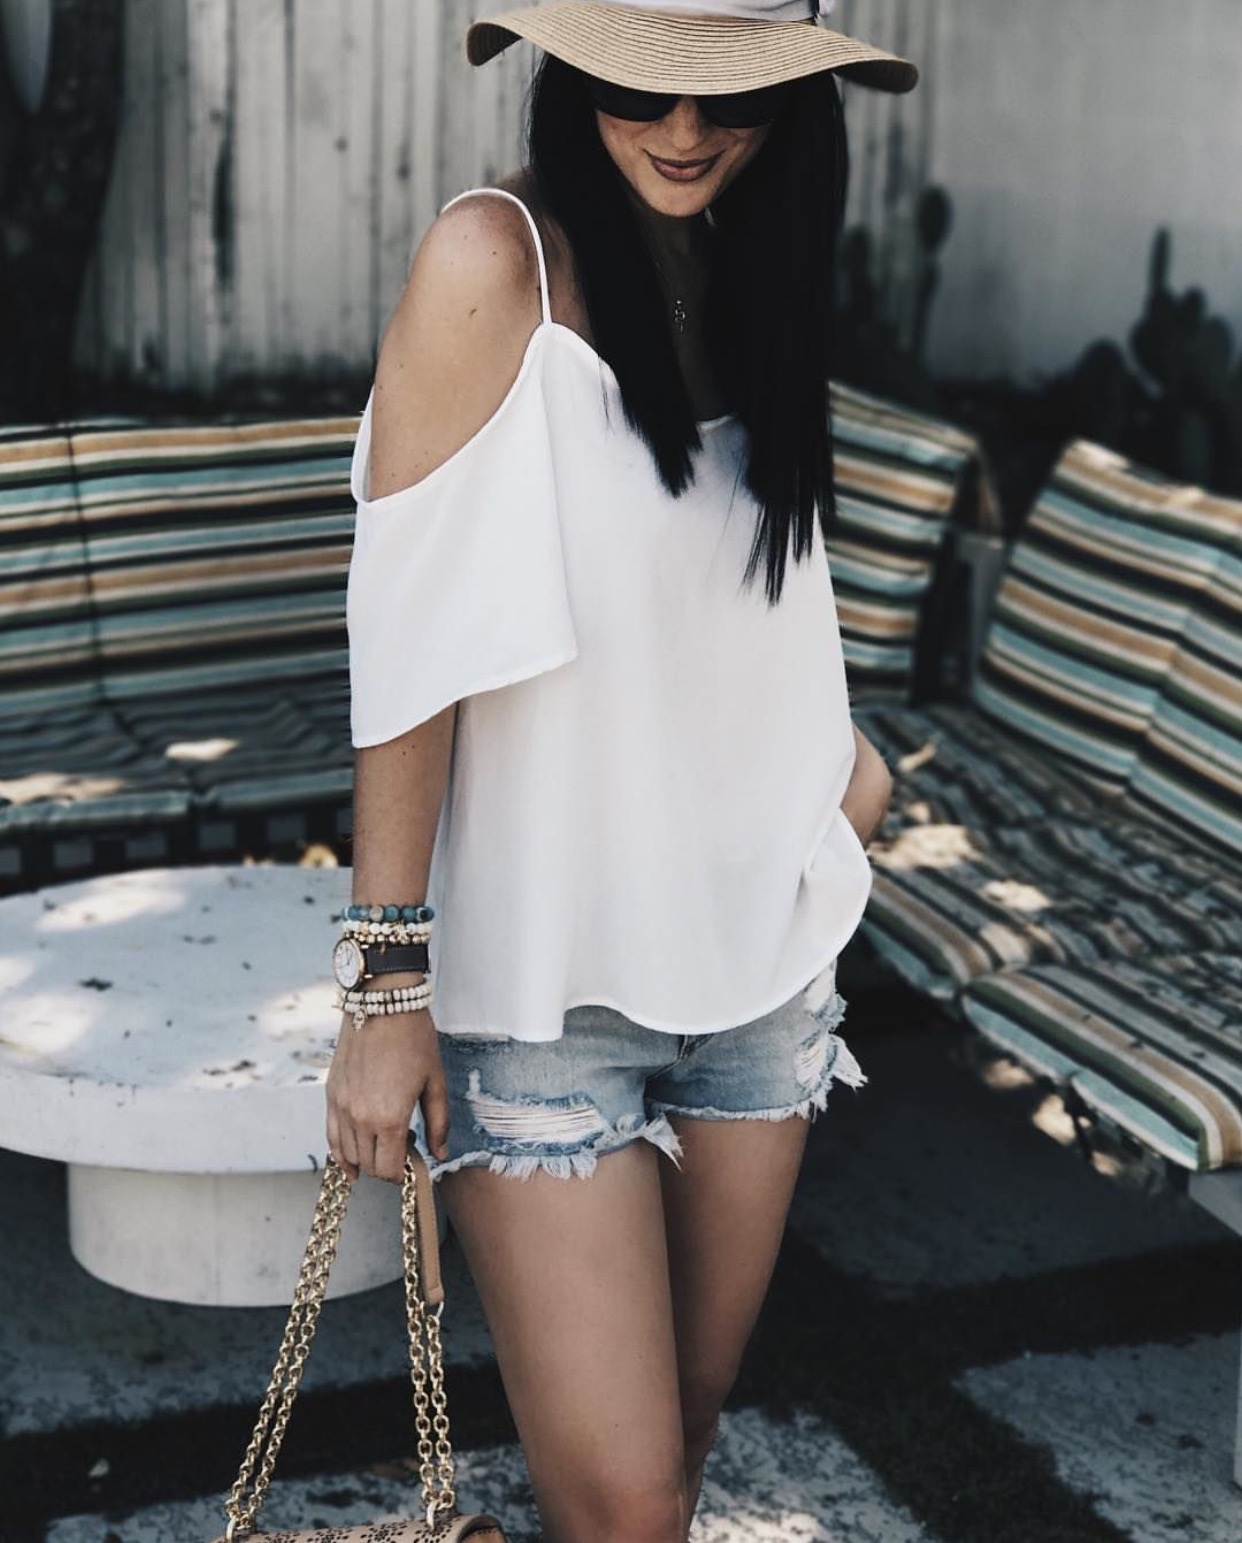 DTKAustin shares her favorite looks from her April Instagram posts over on the blog. The best of summer outfits all in one place! Click for more information and photos.